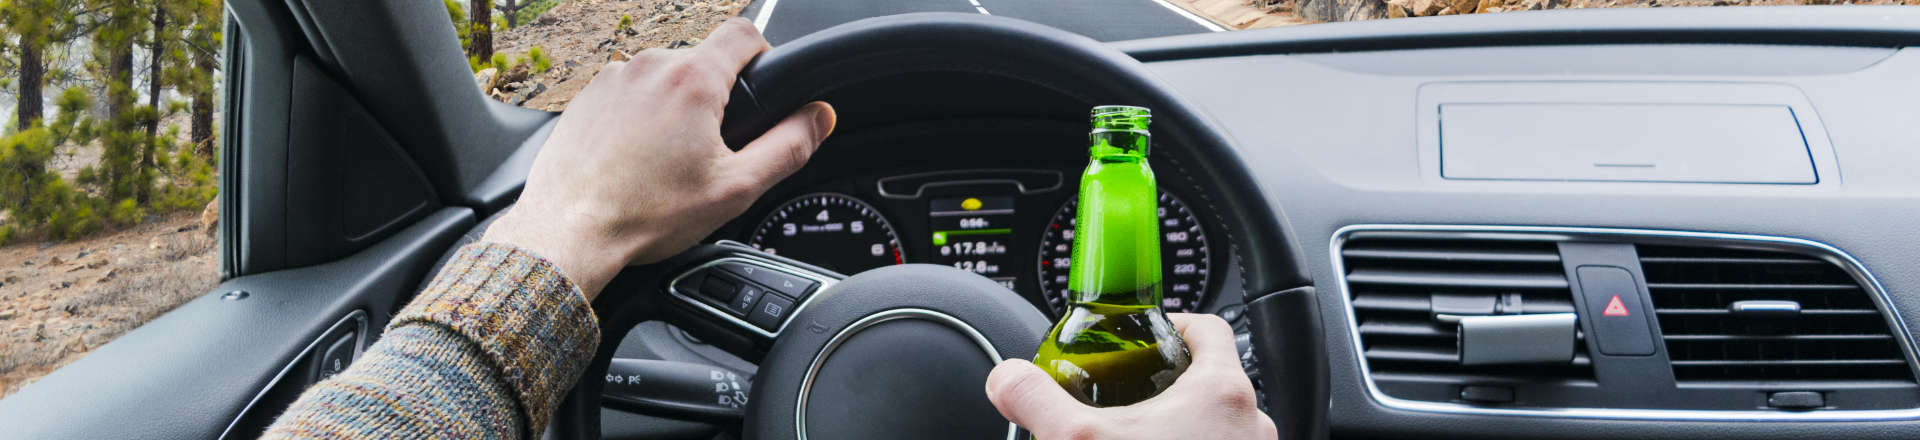 a driving person with a bottle of beer in their hand